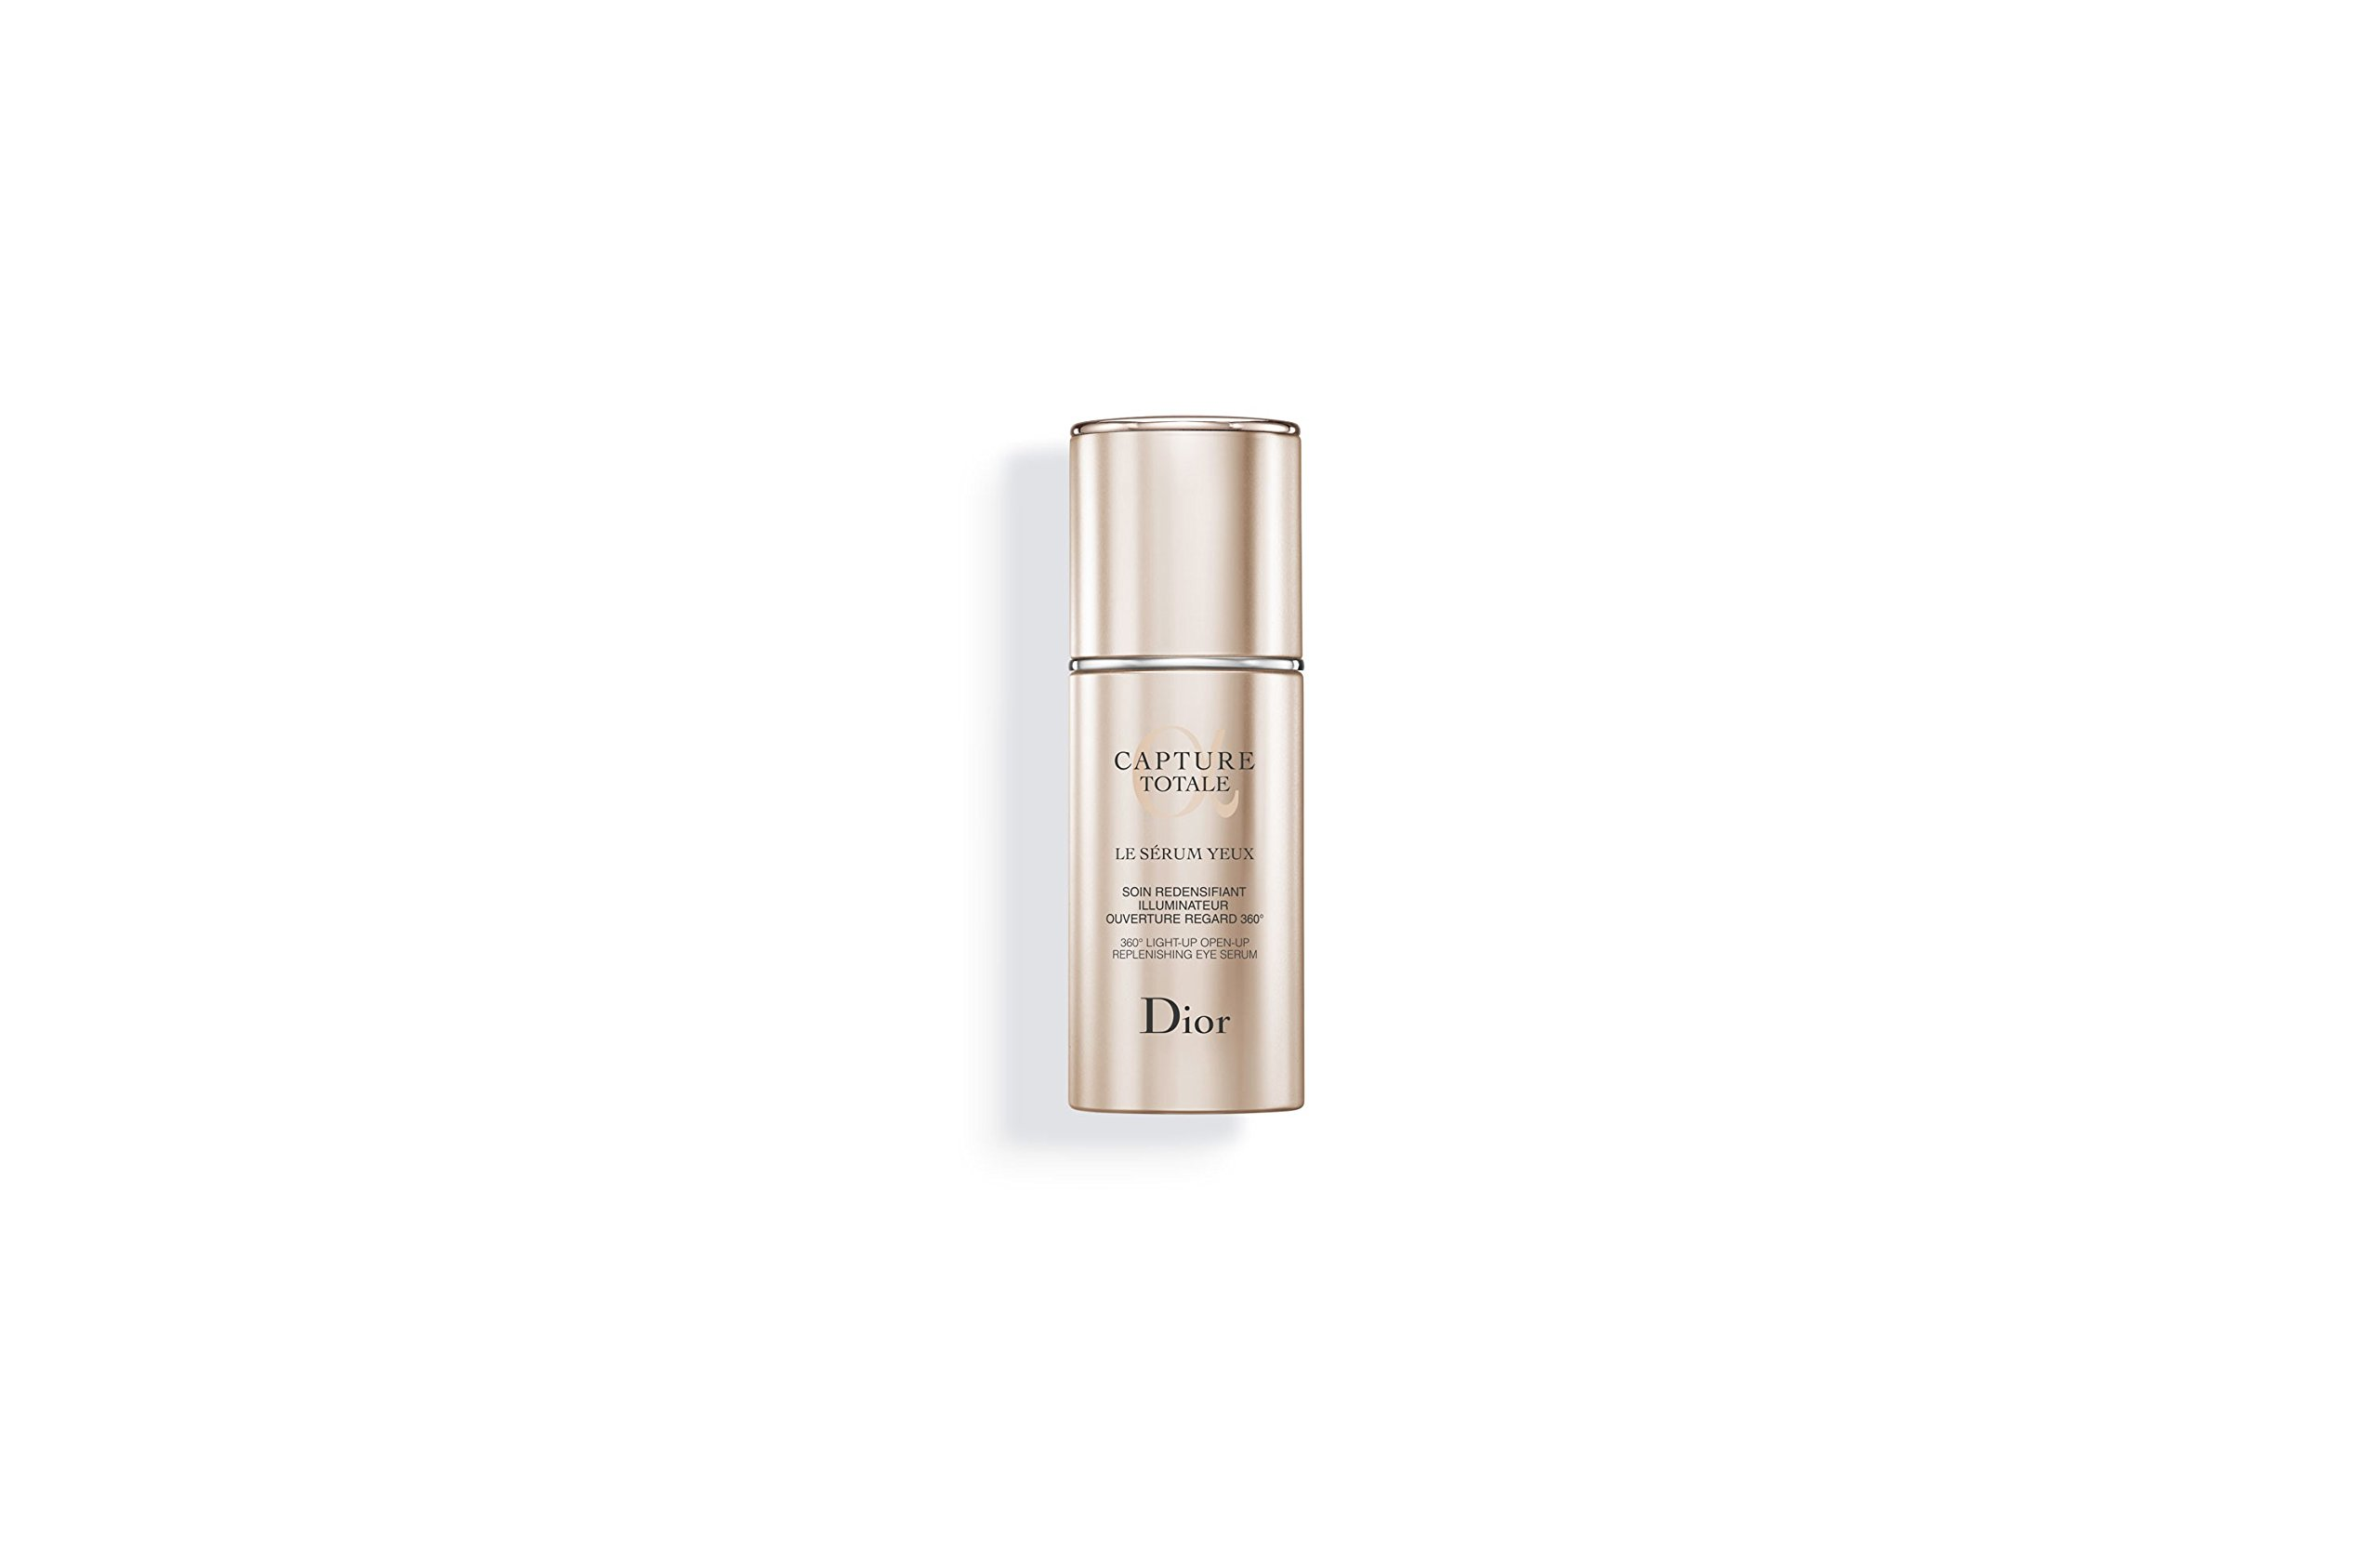 DIOR CAPTURE TOTALE 360° LIGHT-UP OPEN-UP REPLENISHING EYE SERUM 15ML.